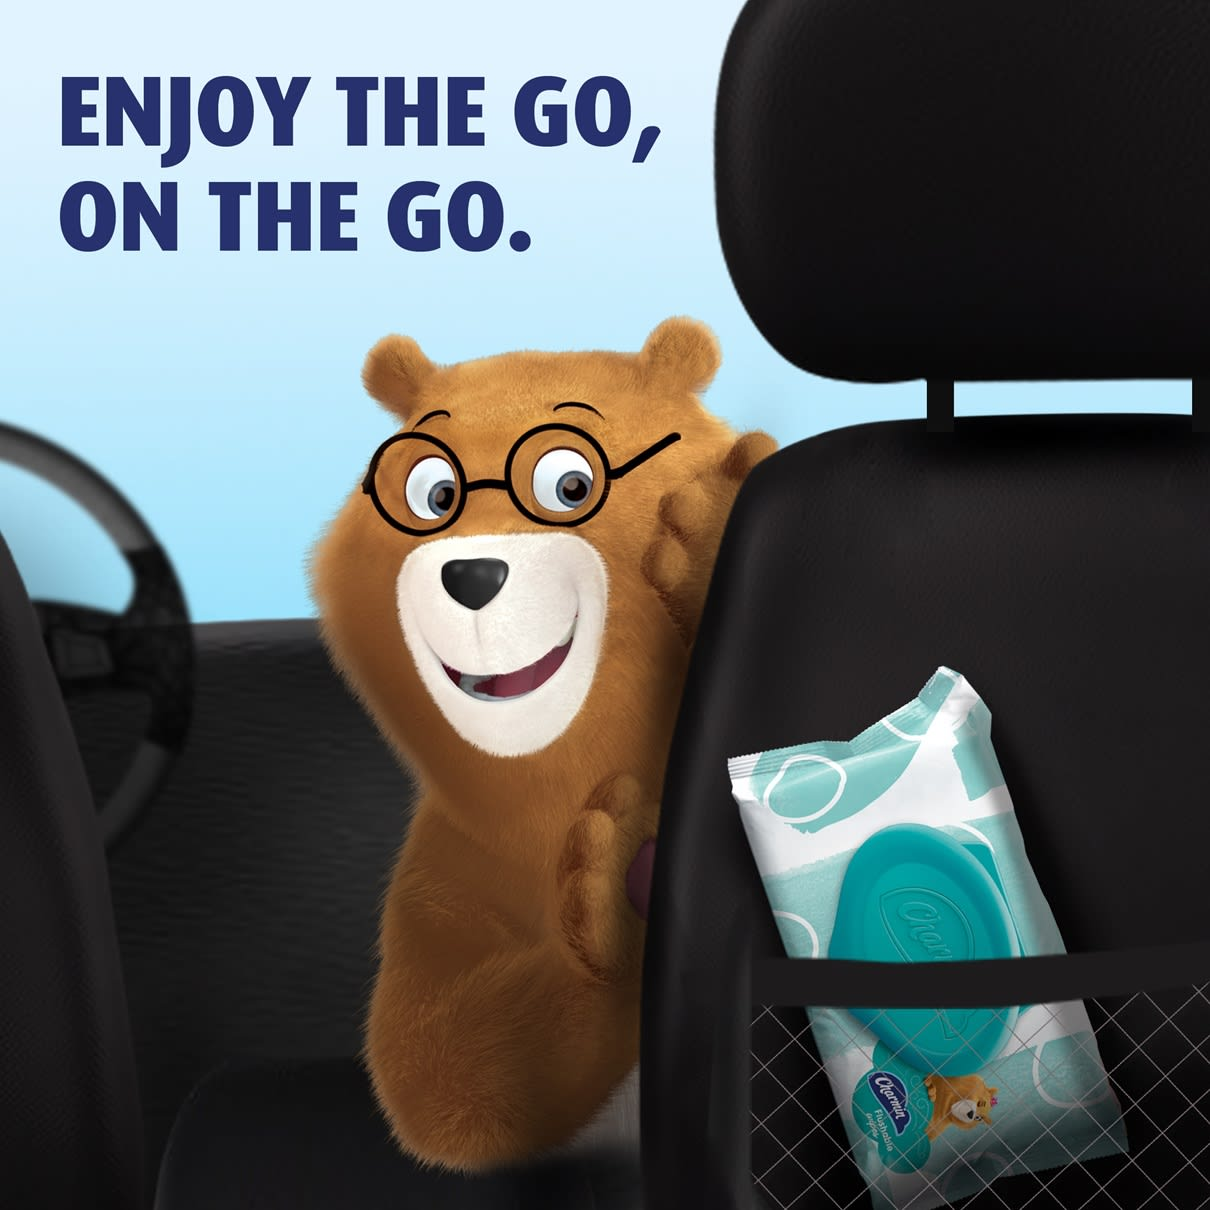 Enjoy the go in travel with Charmin flushable wipes